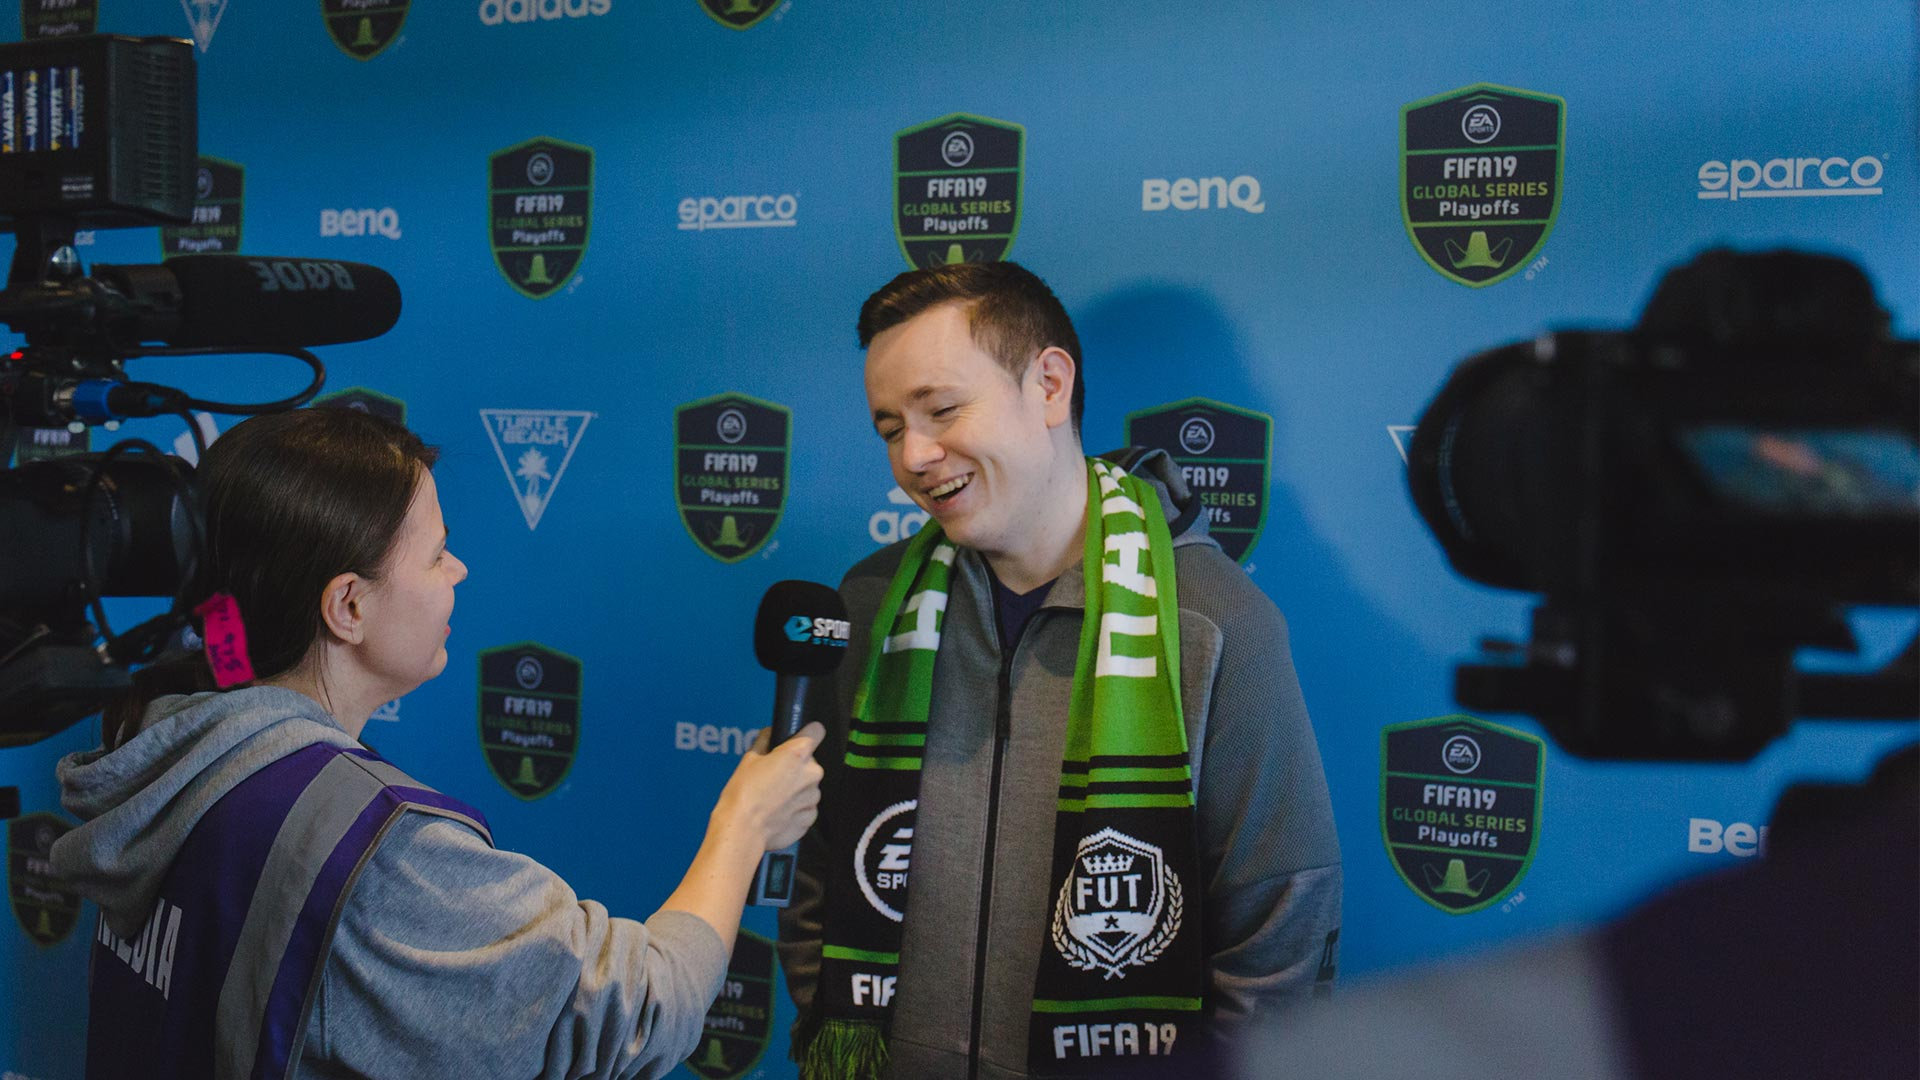 FIFA 19 Xbox Play-offs Rebel Stokes Interview